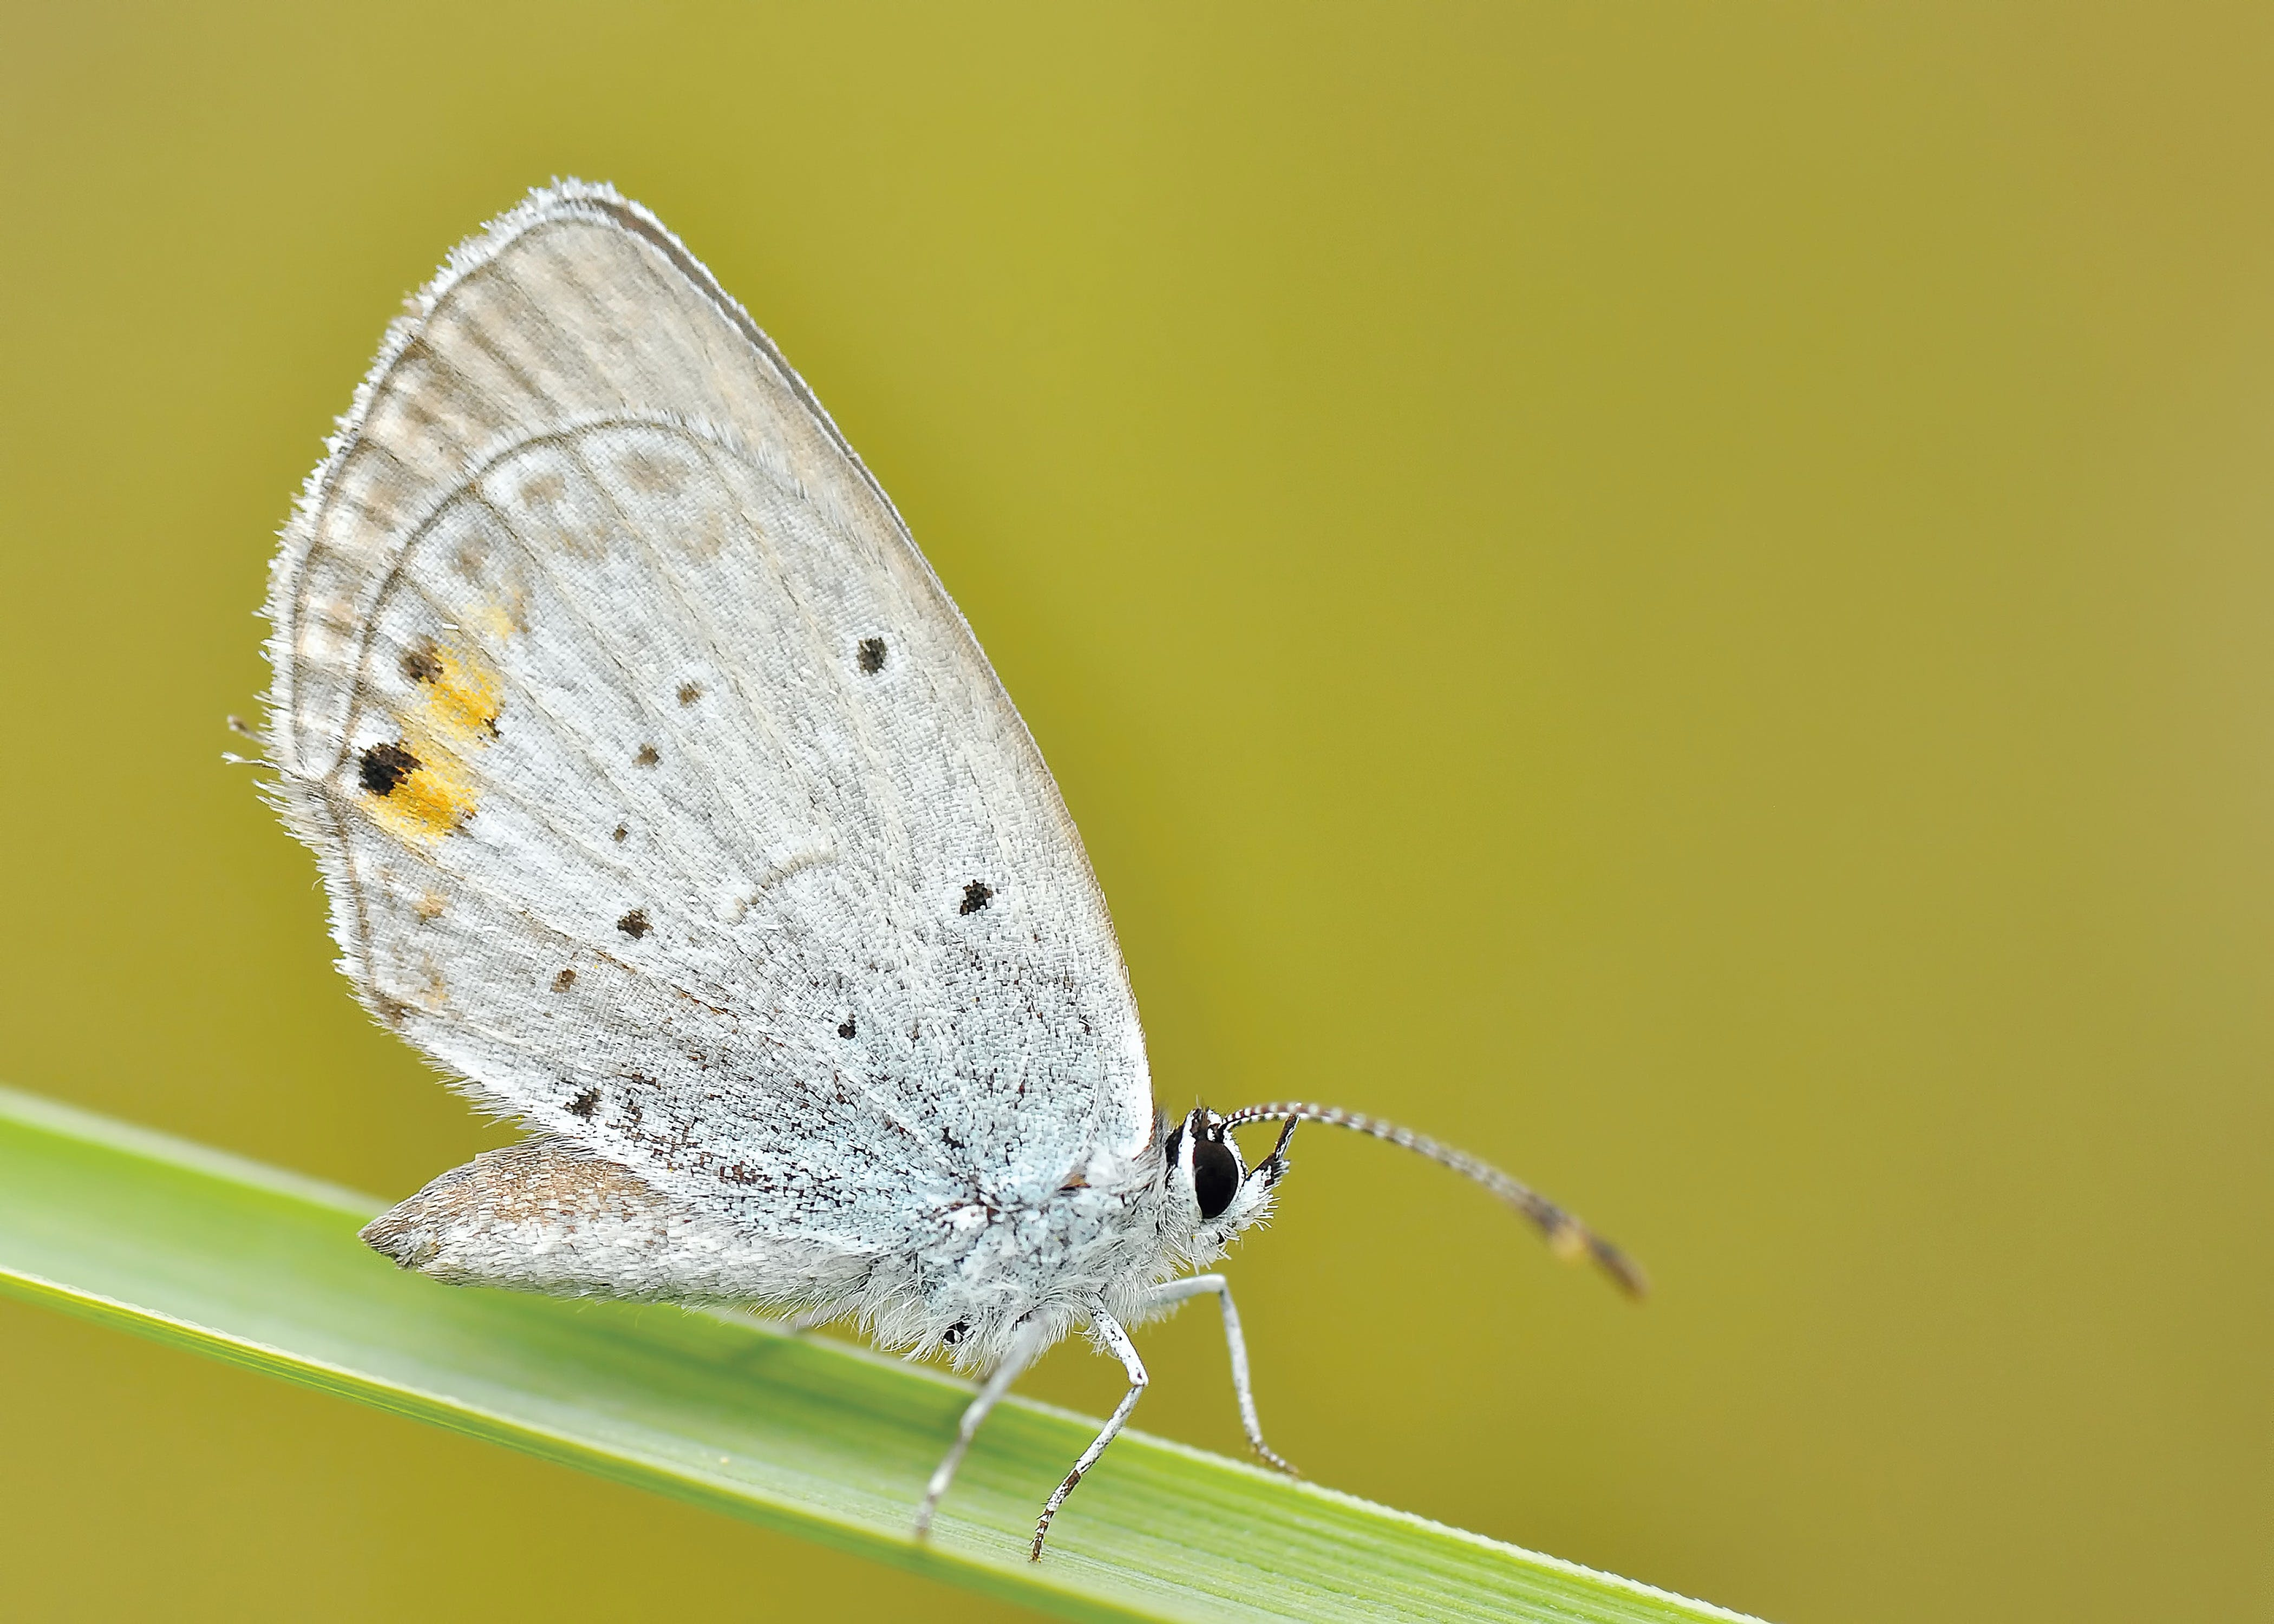 Grey Butterfly on Green Stem